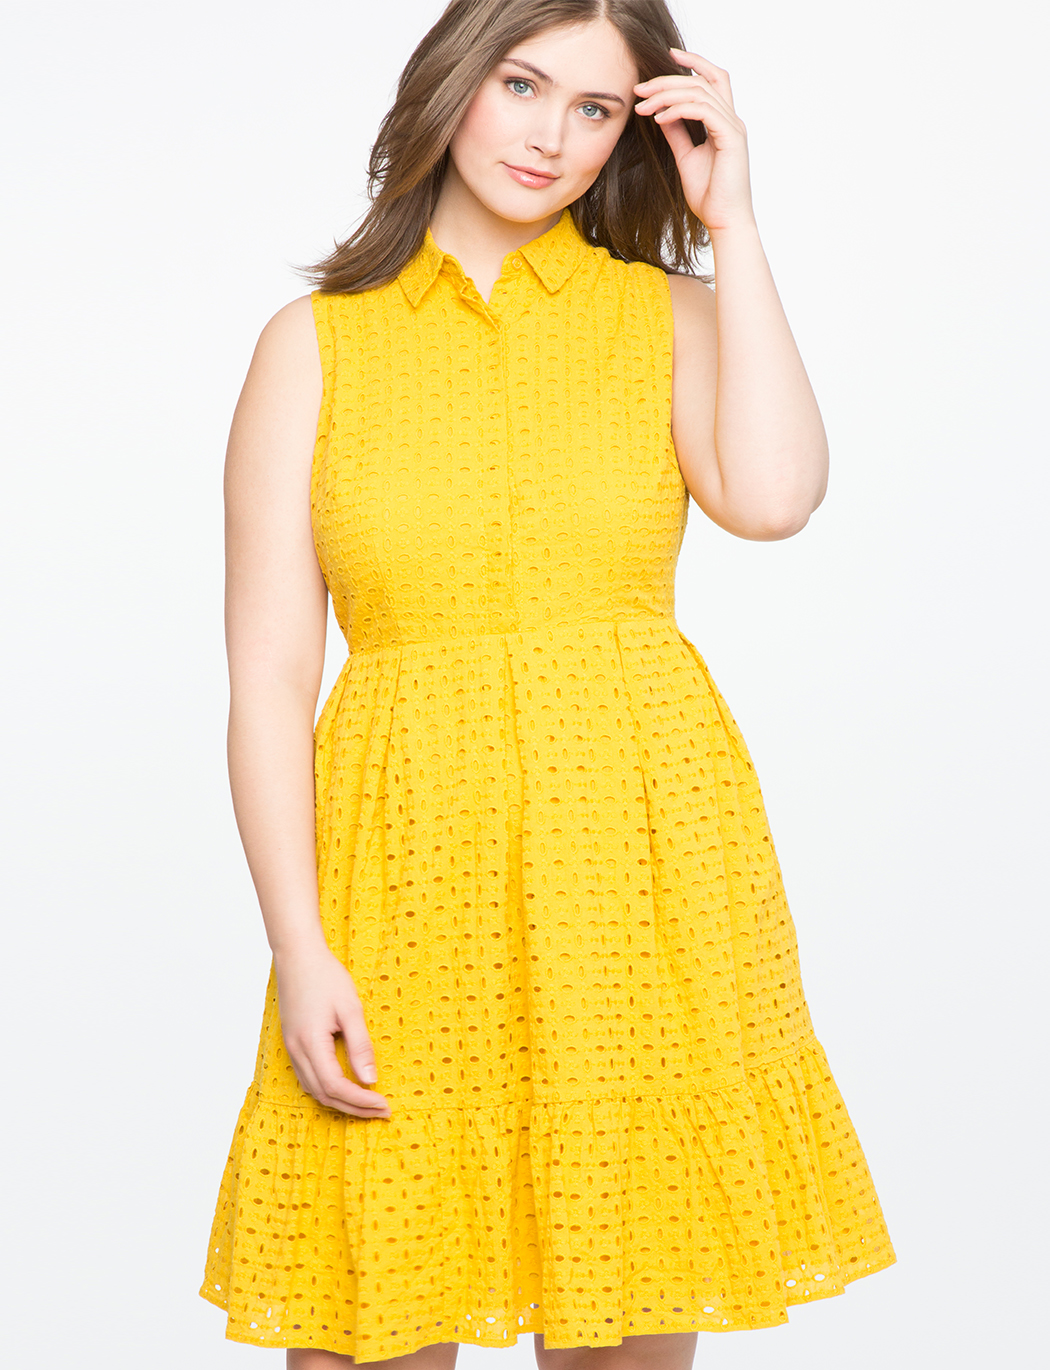 Collared Eyelet Fit and Flare Dress | Women\'s Plus Size Dresses | ELOQUII